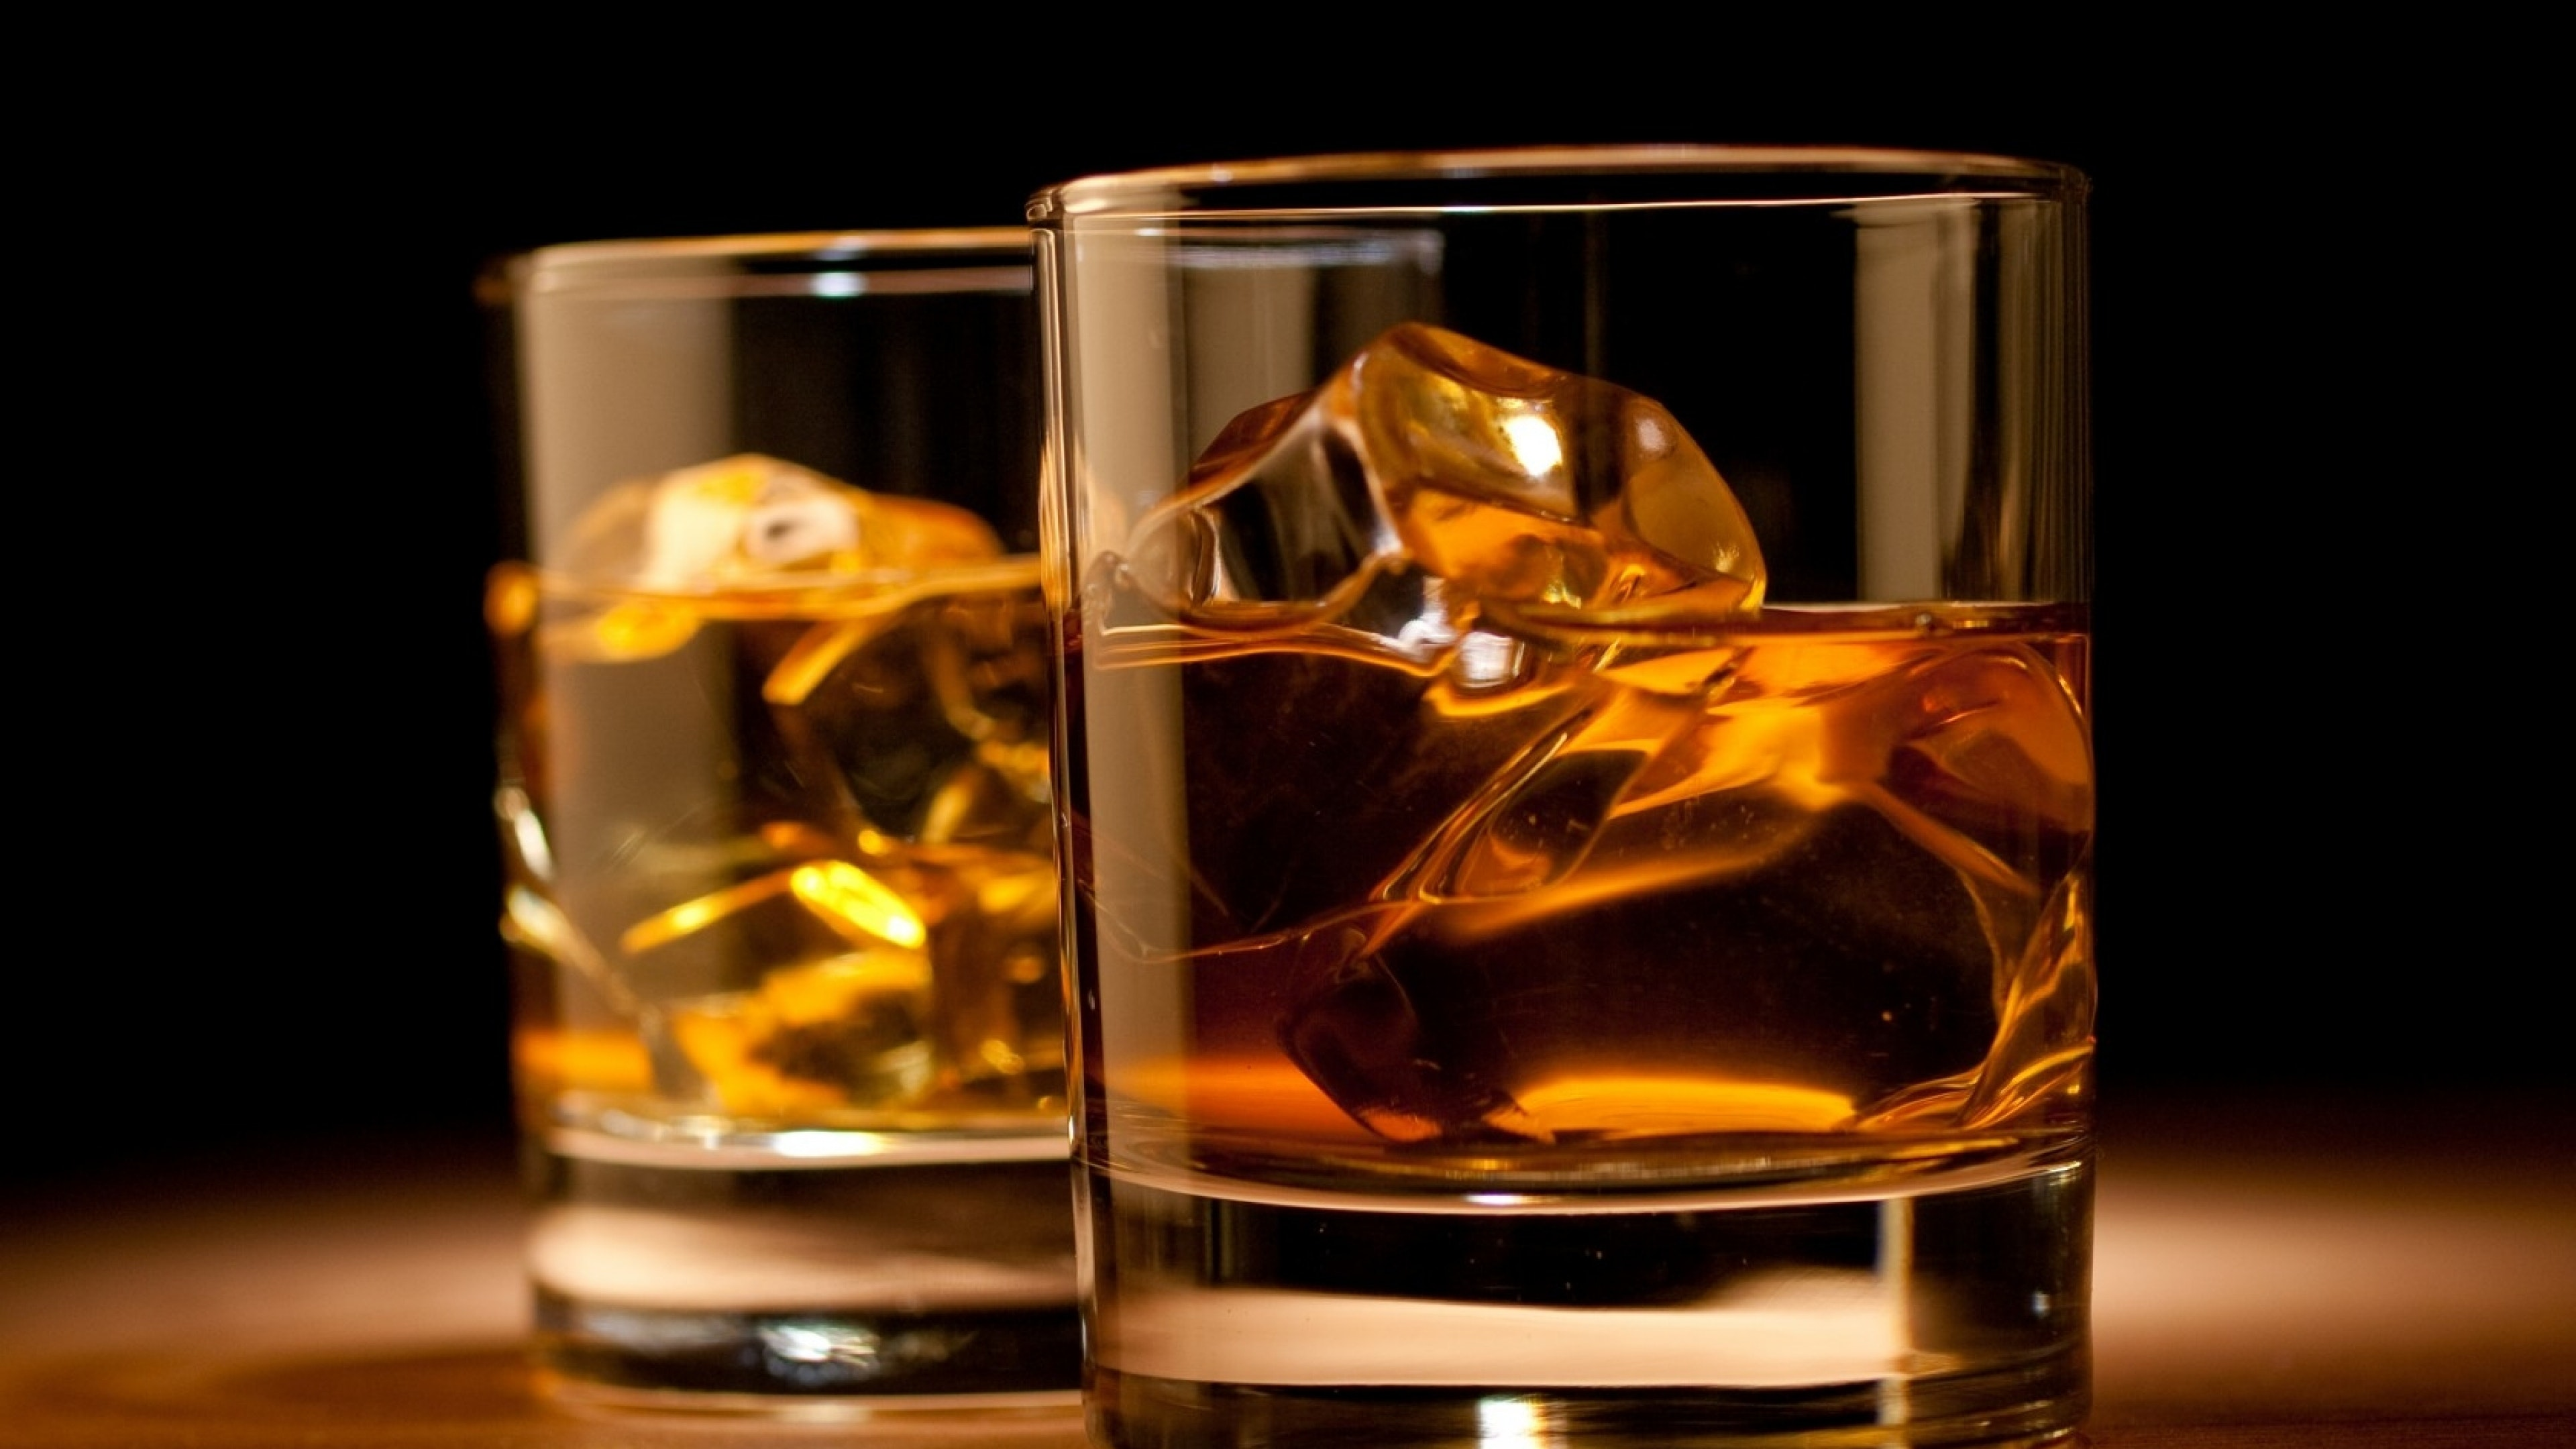 1519127502248368 whiskey drink glasses table cube ice 76627 3840x2160